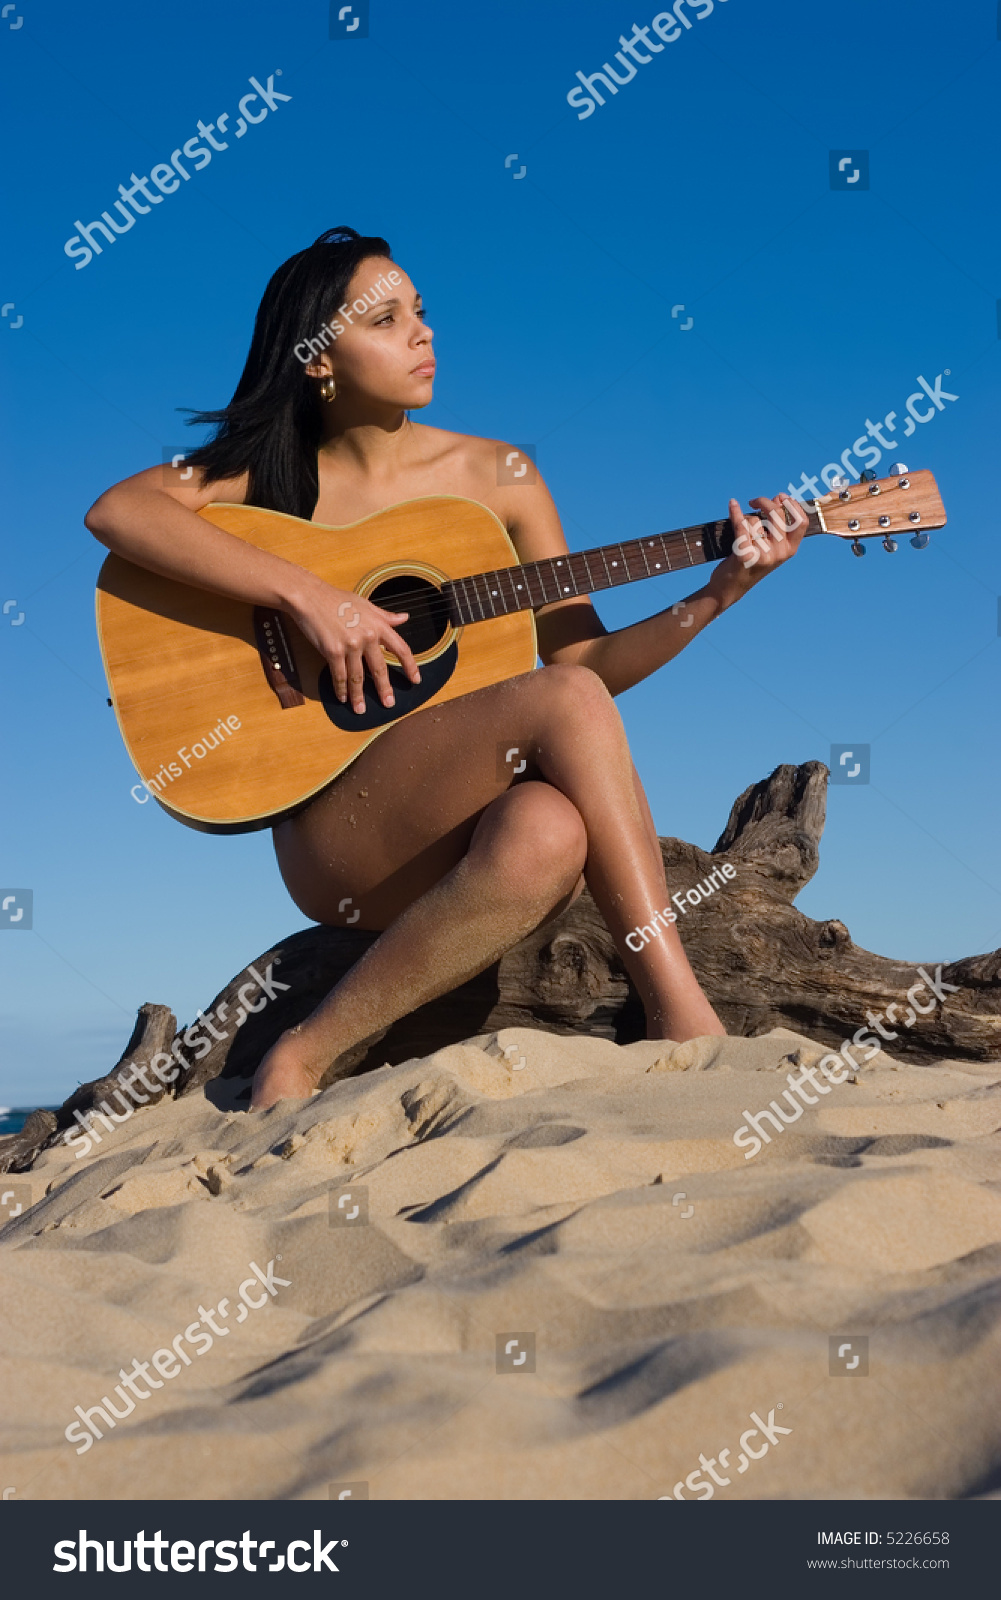 Apologise, that Hot completely naked girls playing the guitar